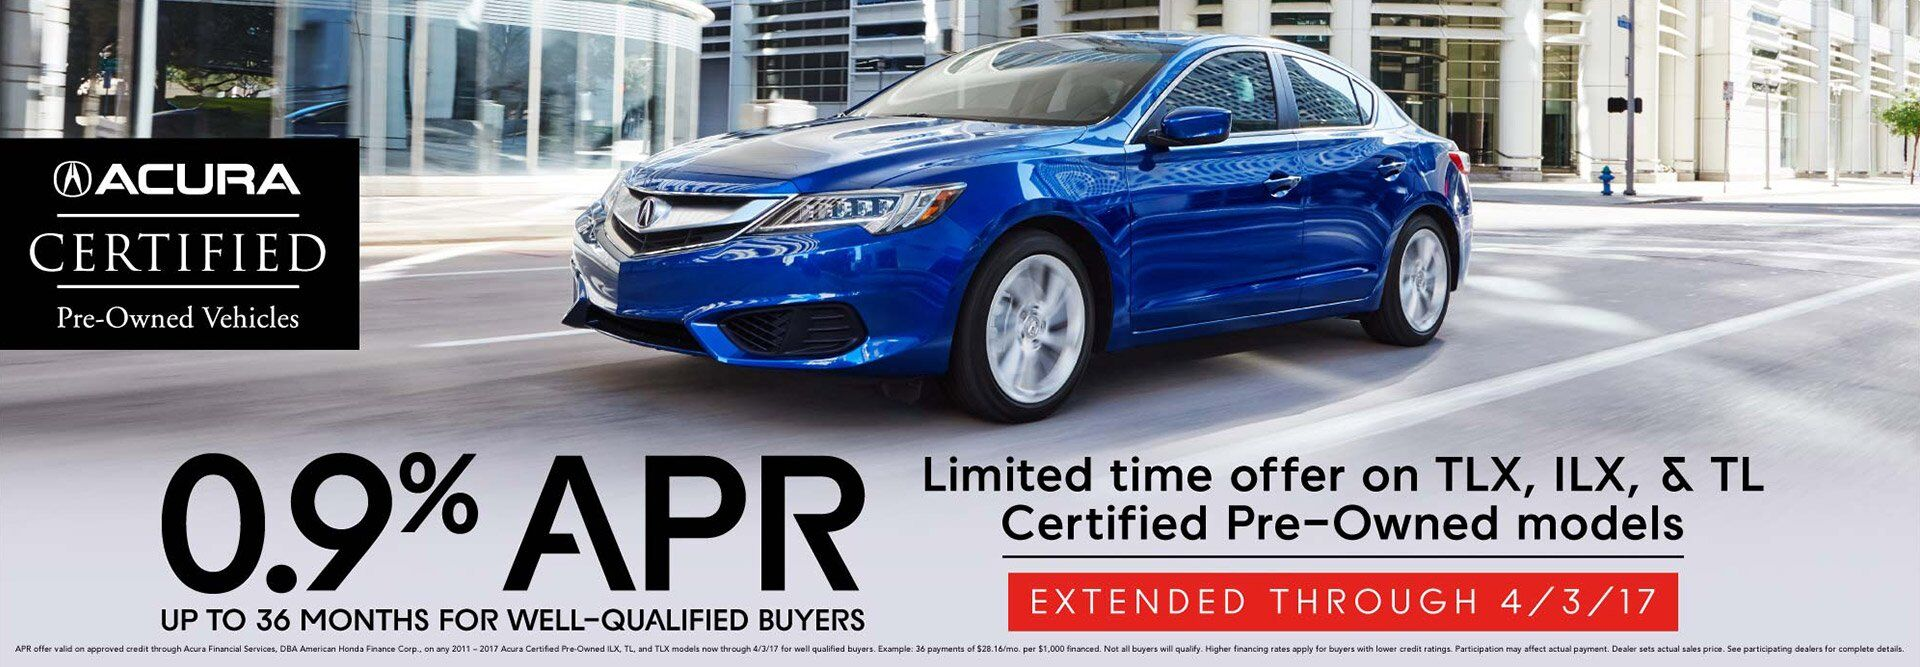 Acura Certified Event